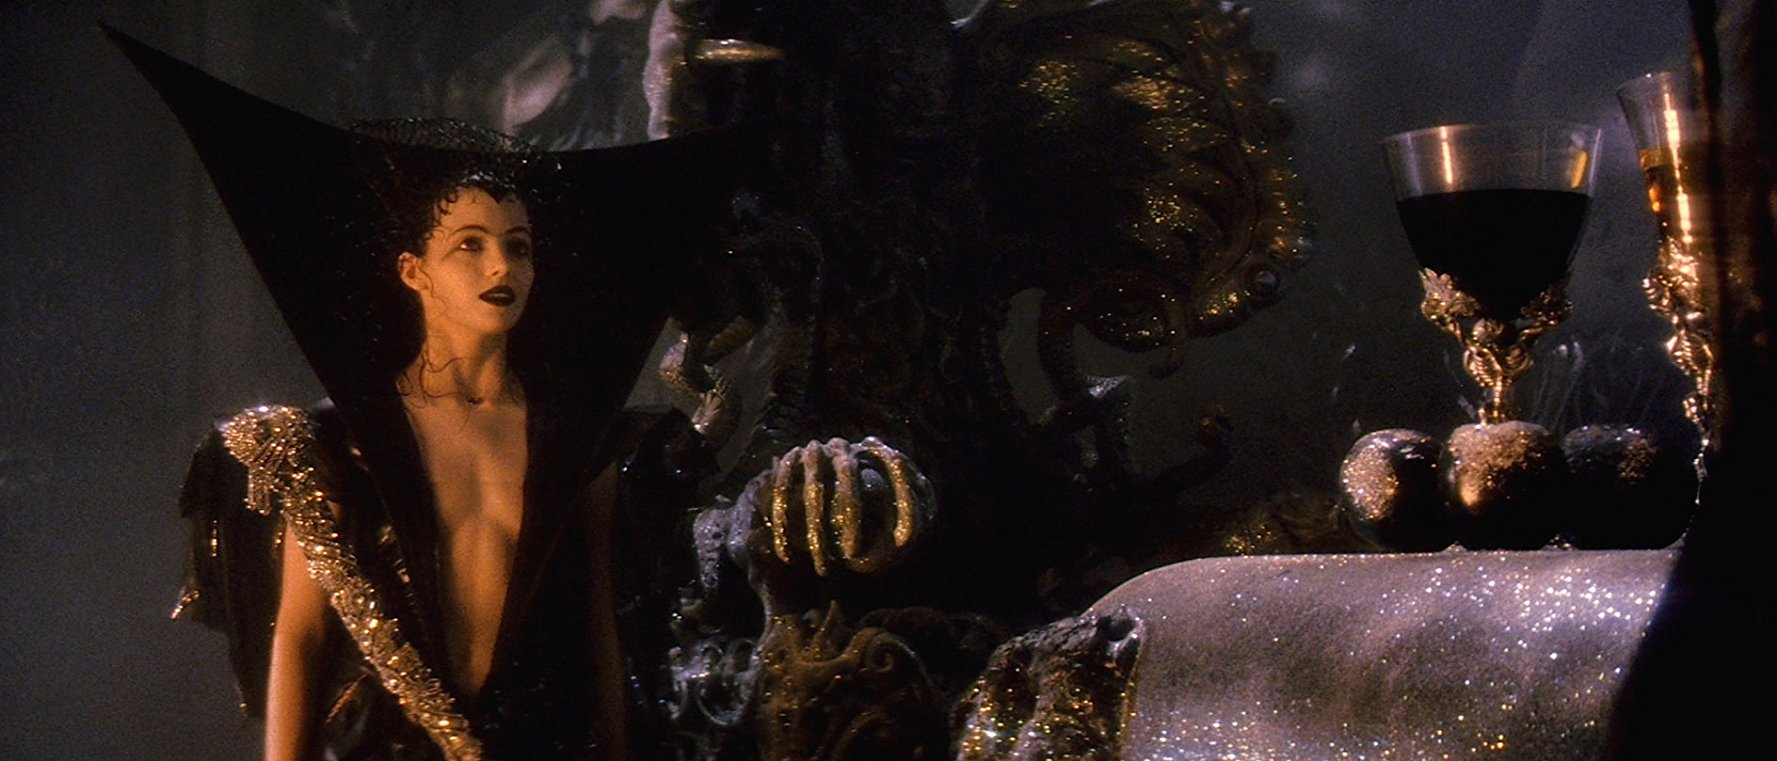 The seduction of Lili (Mia Sara) in Legend (1985)